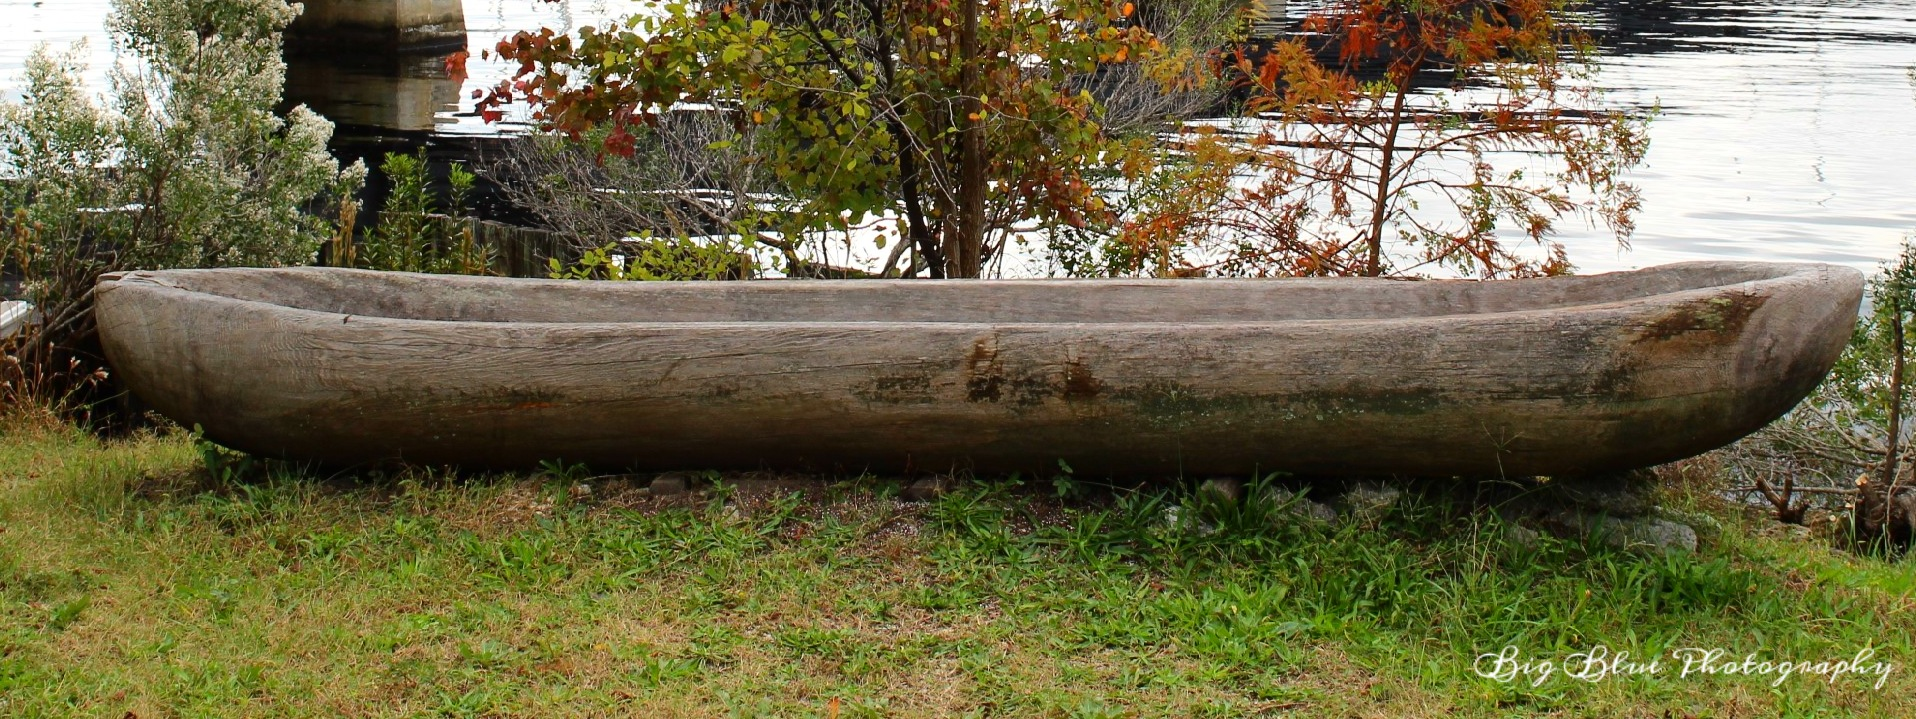 Dugout Canoe by Sierra St Francis Photography